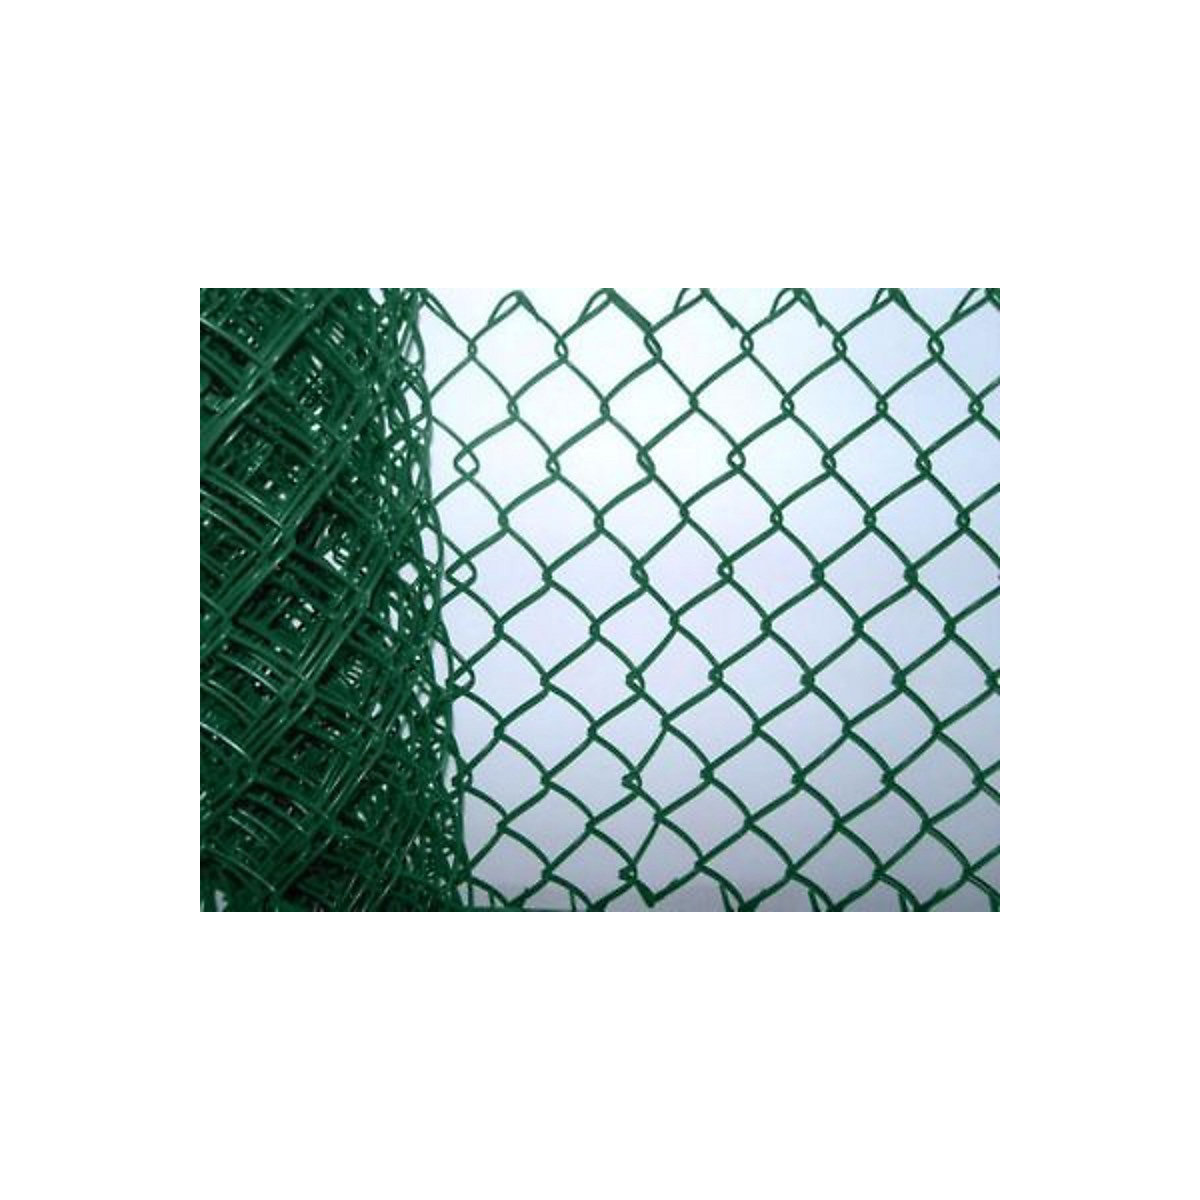 Green Plastic Coated Chainlink Fence 900mm x 50mm x 2.5mm x 10m ...